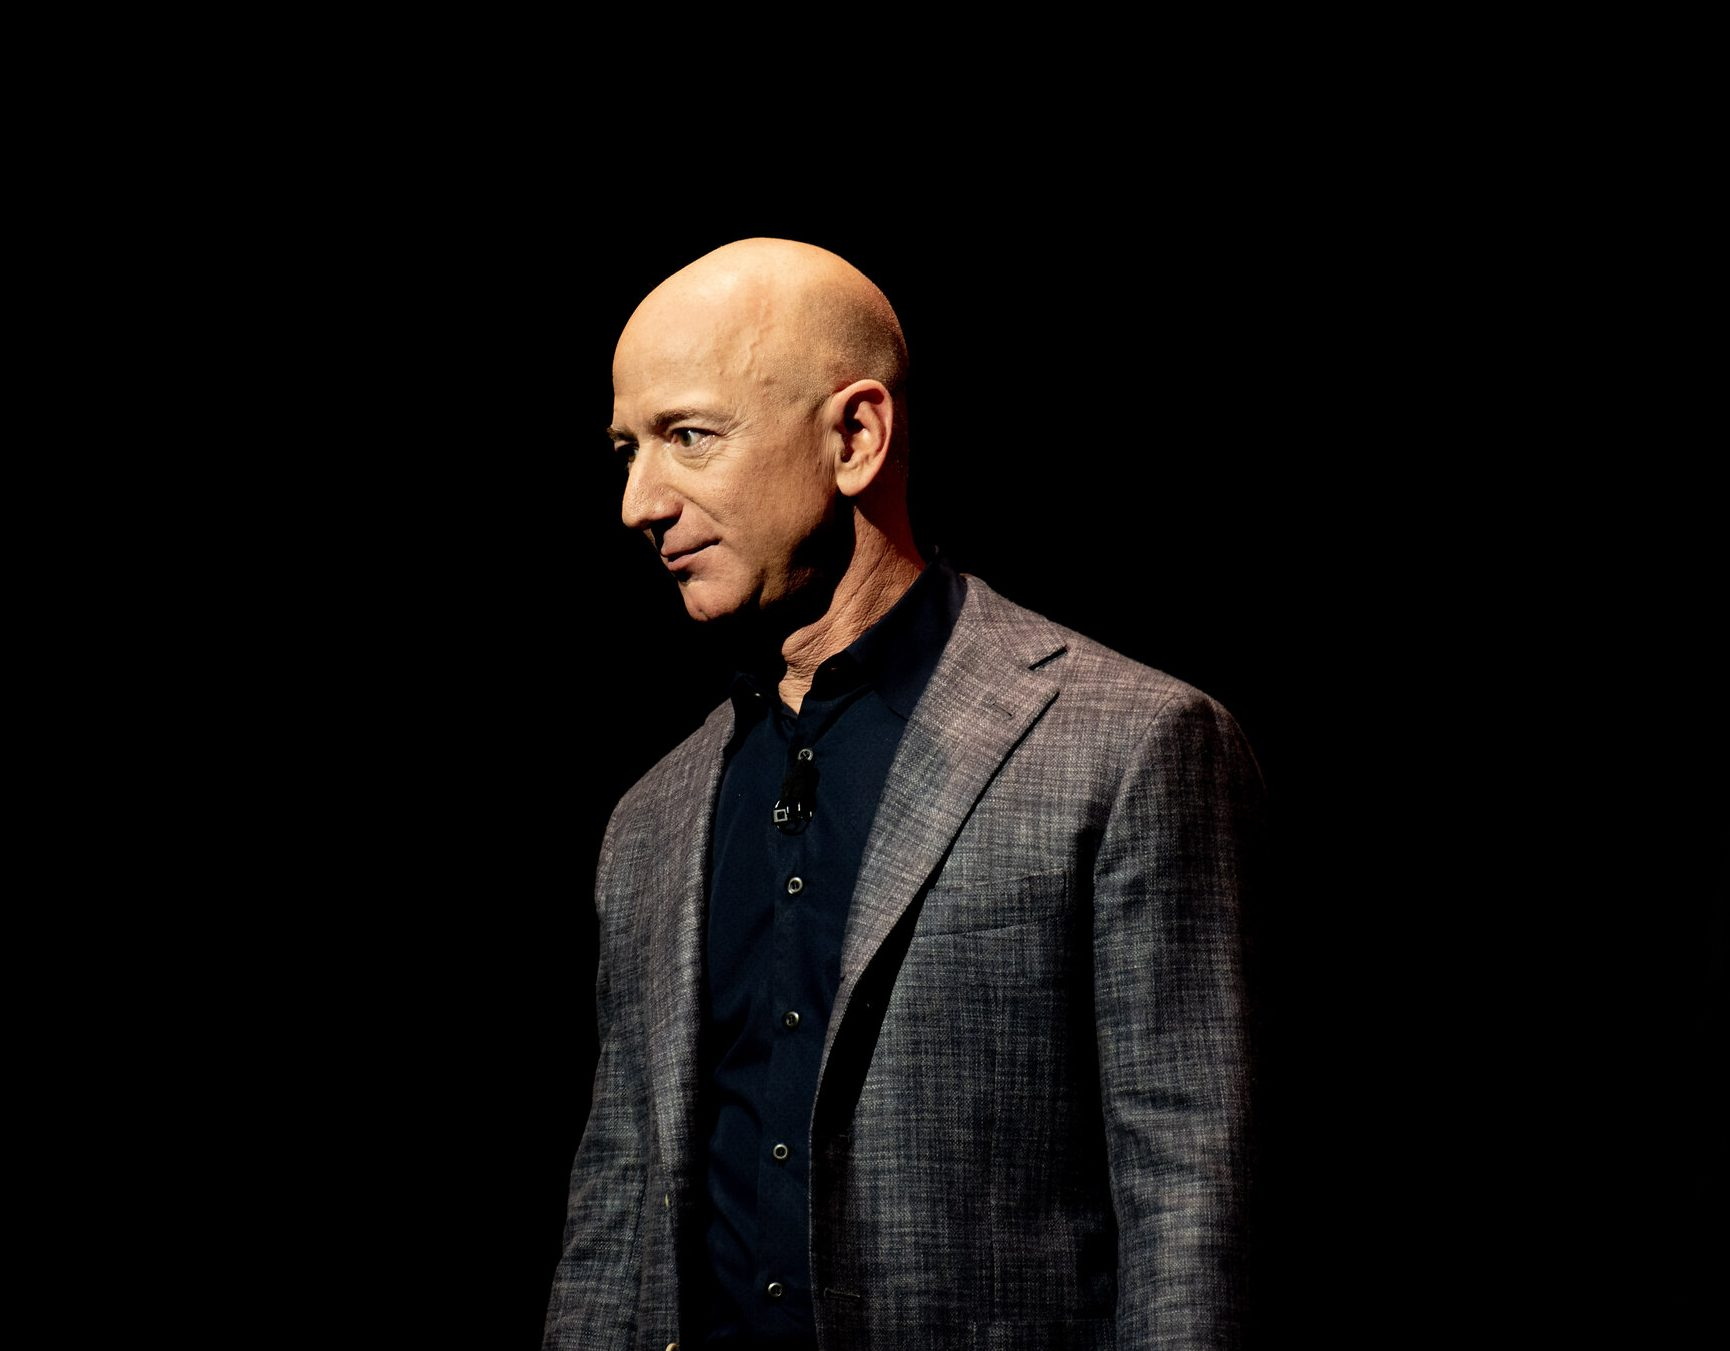 7 Famous entrepreneurs who met failure before success in their entrepreneurial journey